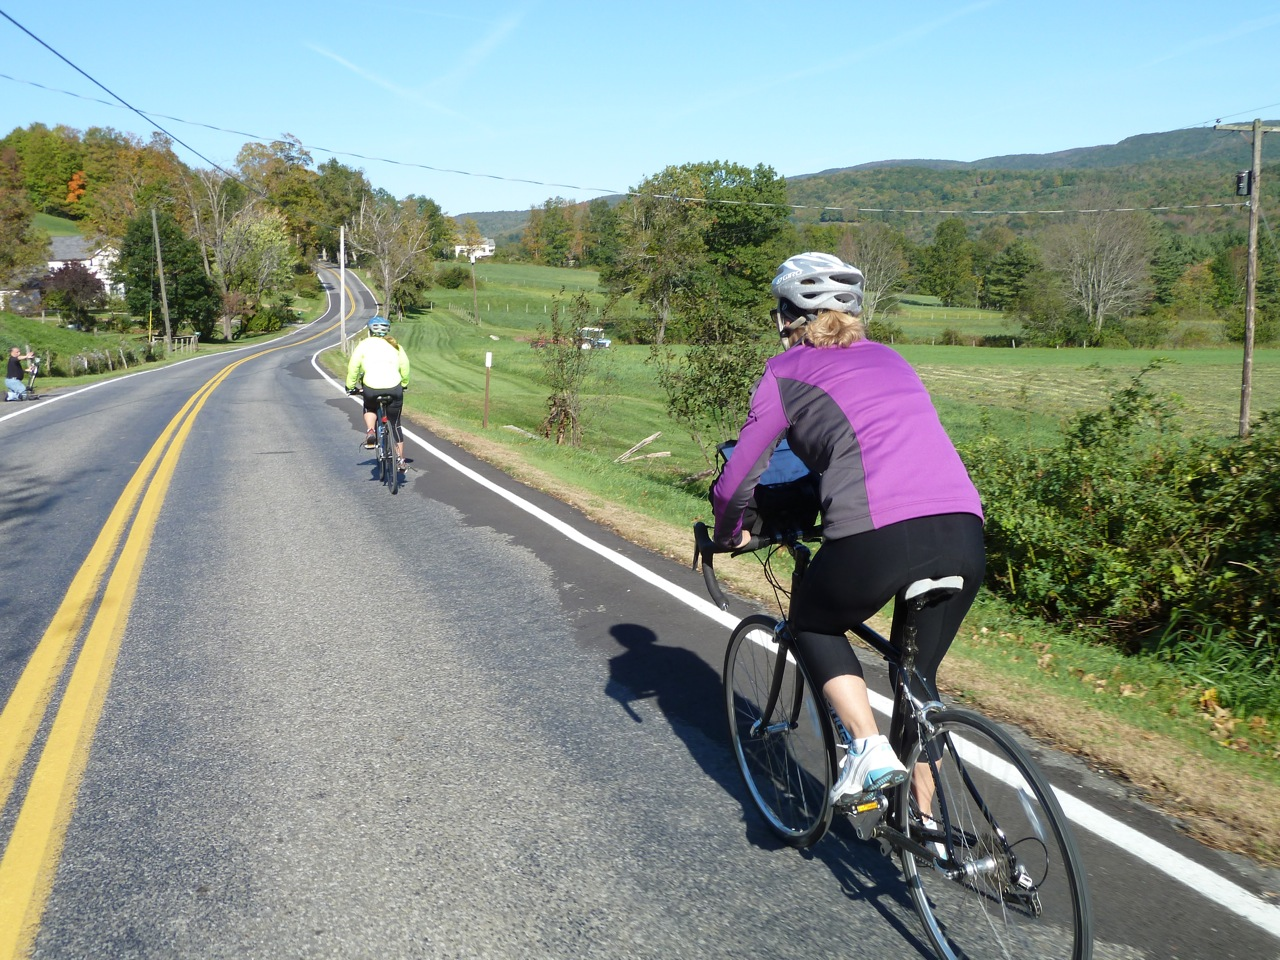 Berkshires Tri-state Ride: quiet biking roads lead into NY and VT